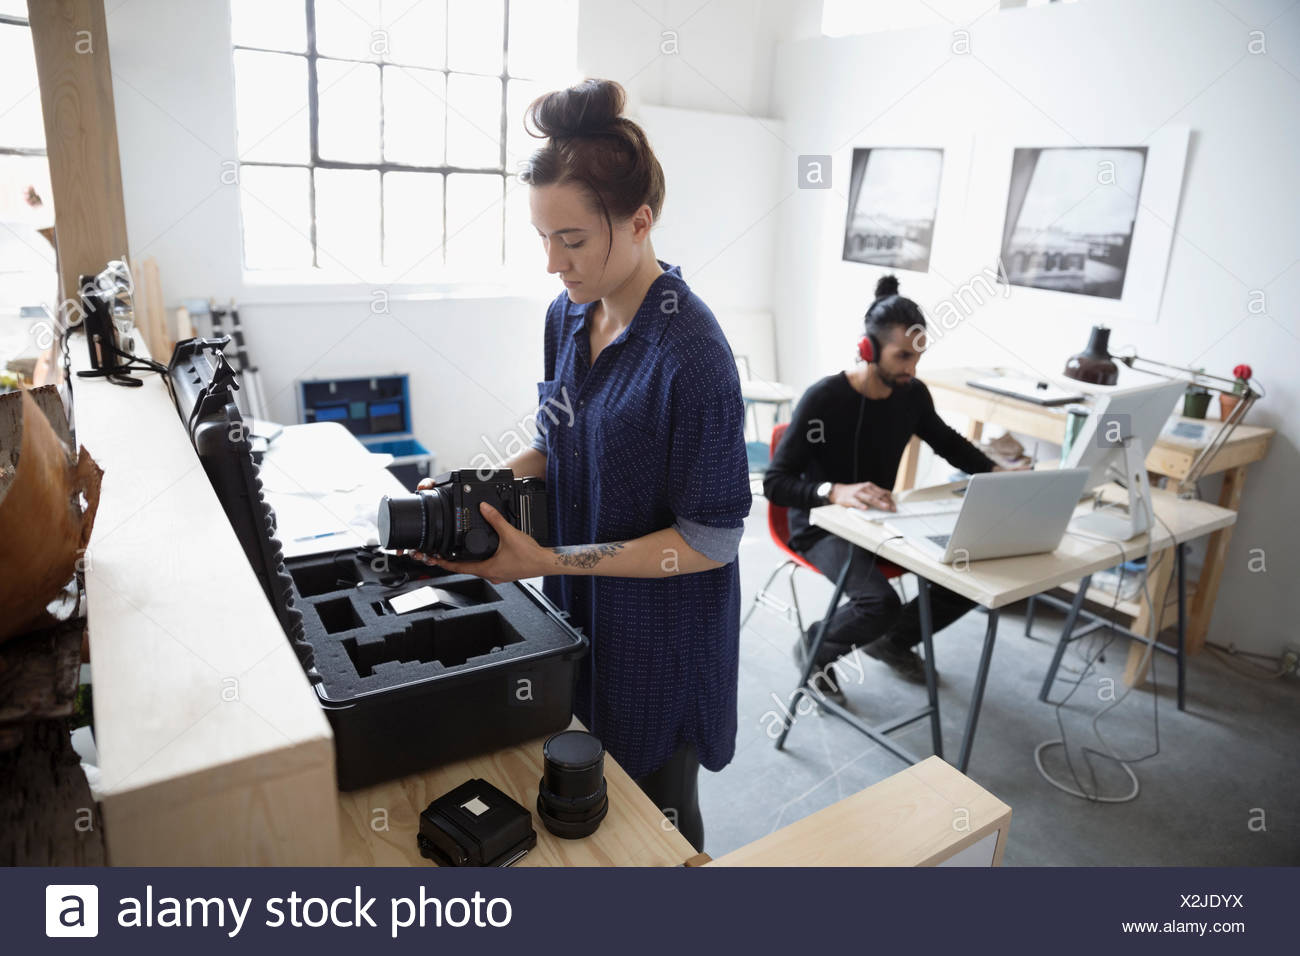 Photographers working at laptop and with camera lenses in art studio - Stock Image